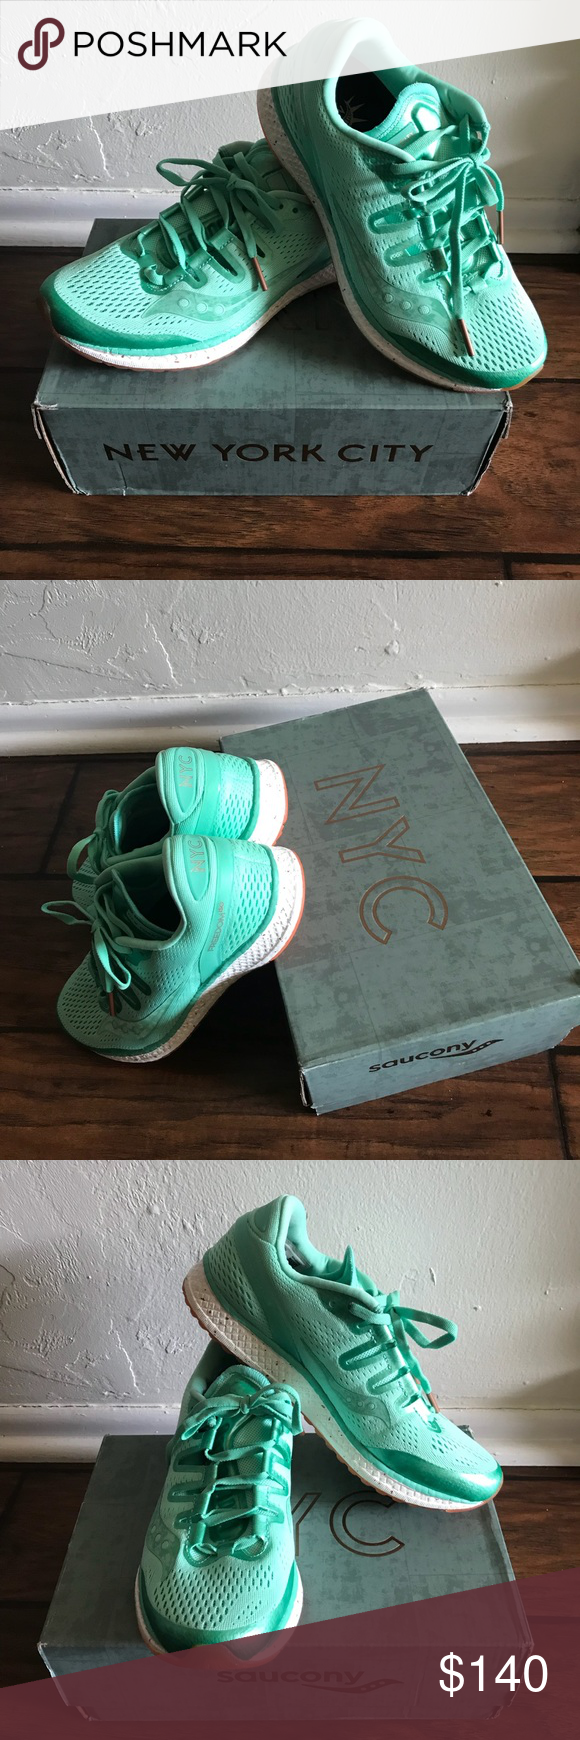 Early Superficial overseas  Saucony Freedom ISO New York 2017 LIMITED edition Brand New in the original  box. Stunning New York 2017 edition with markings on the s… | Saucony  shoes, New york 2017, Fashion design